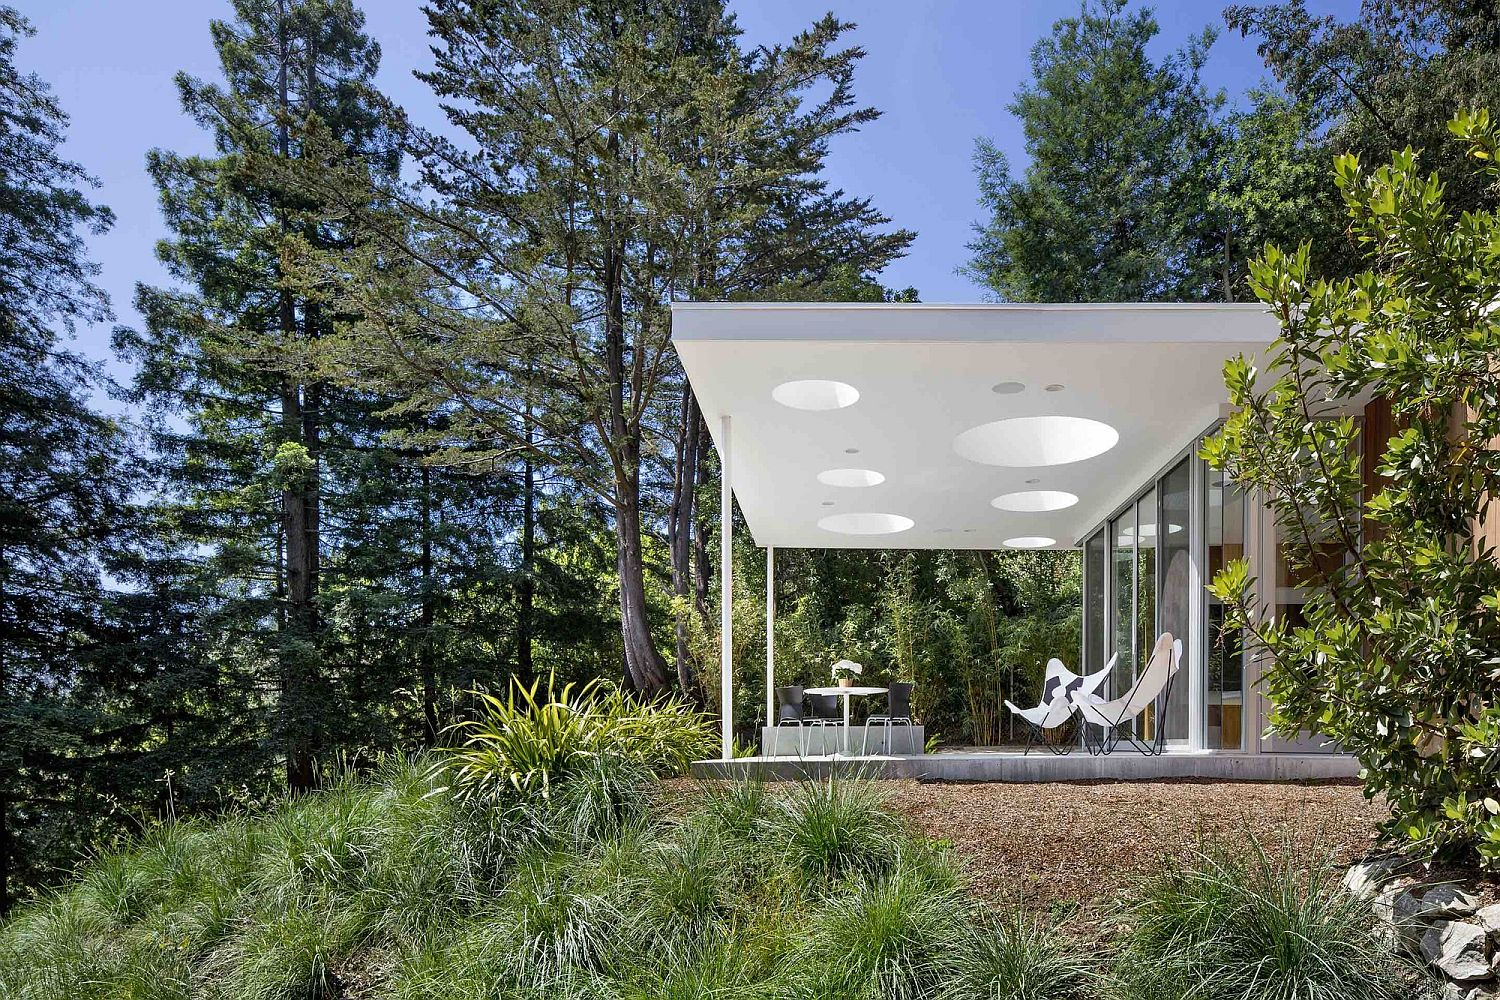 Imaginative-design-of-skylights-adds-to-the-visual-of-the-elegant-porch-as-well